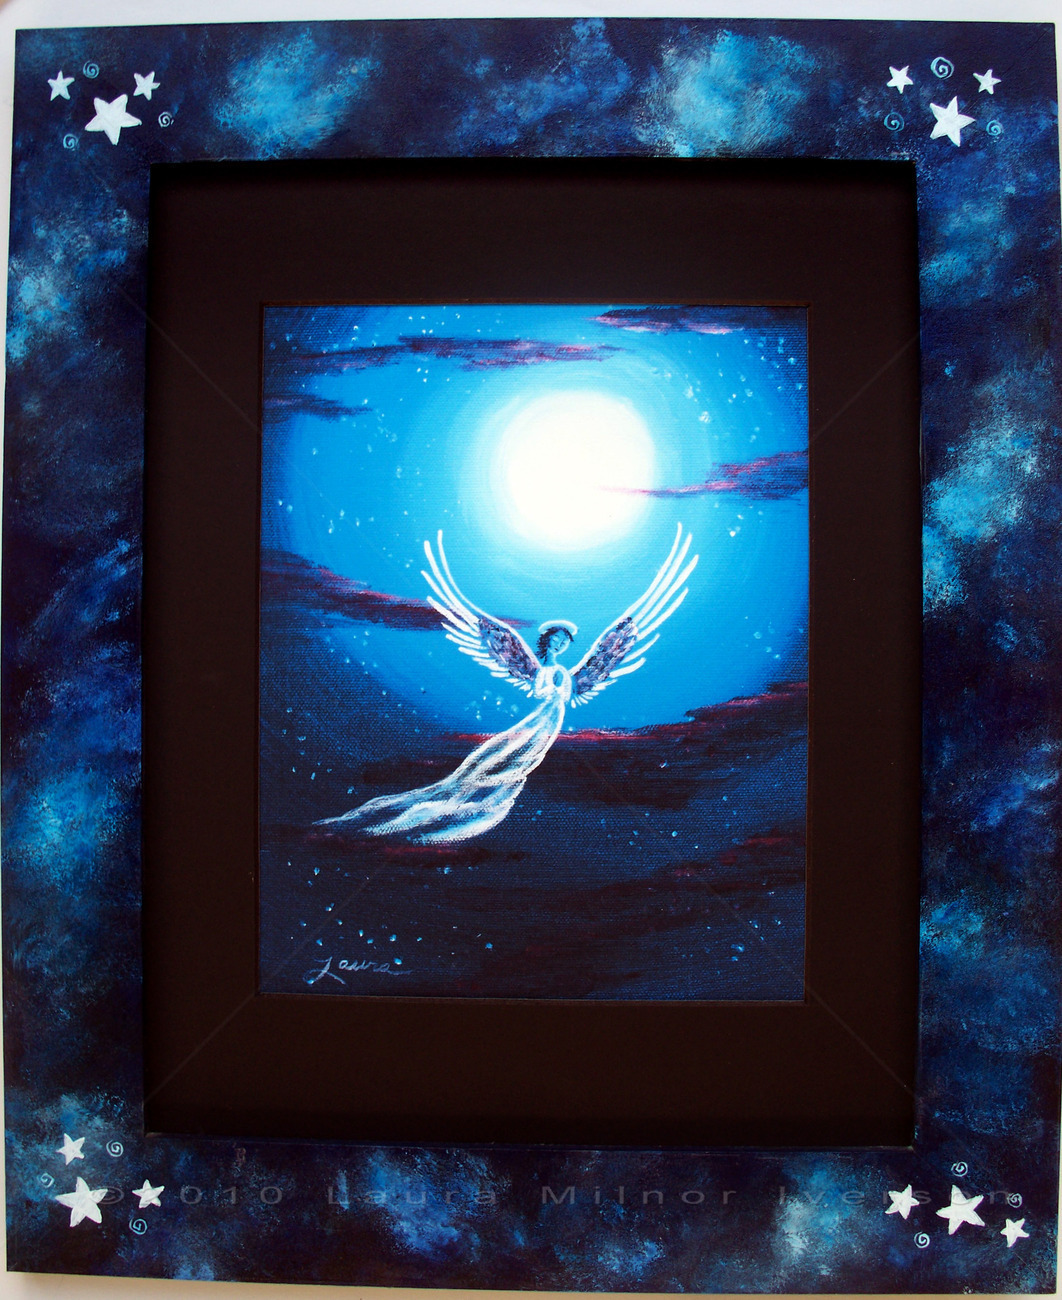 Blue Moon Angel Stars Print Handpainted Frame Framed Art